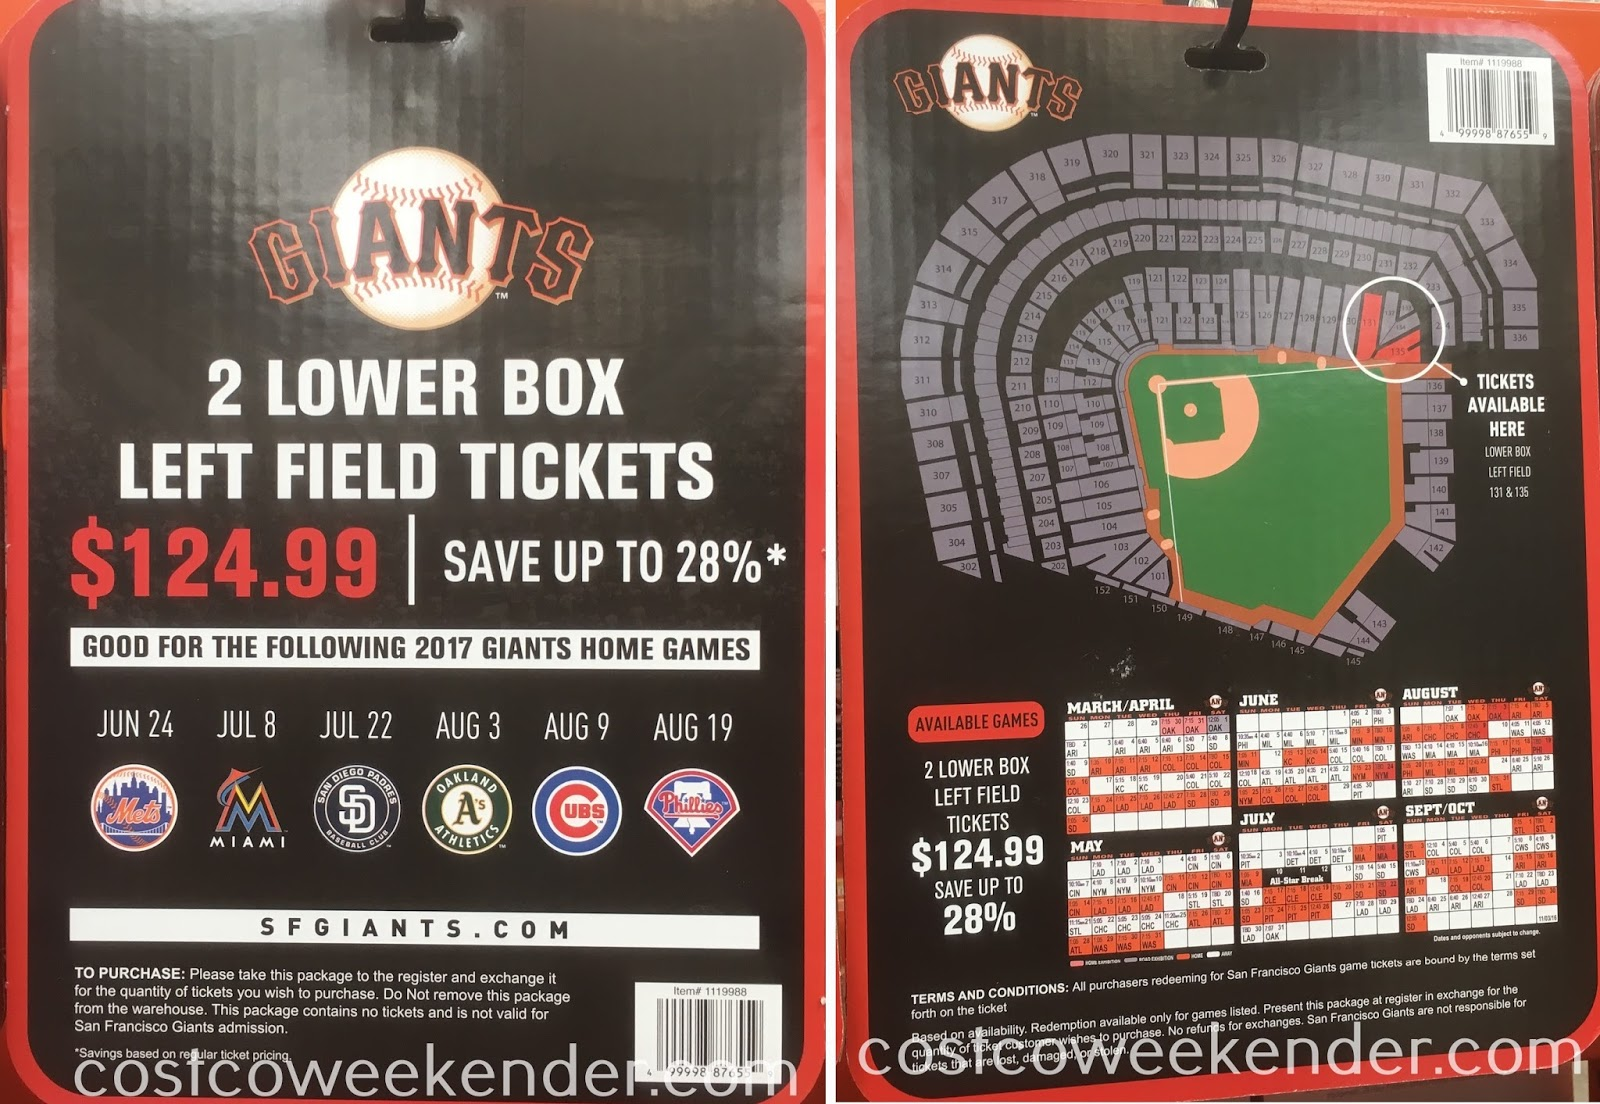 San Francisco Giants Lower Box Left Field tickets: better than sitting nosebleed